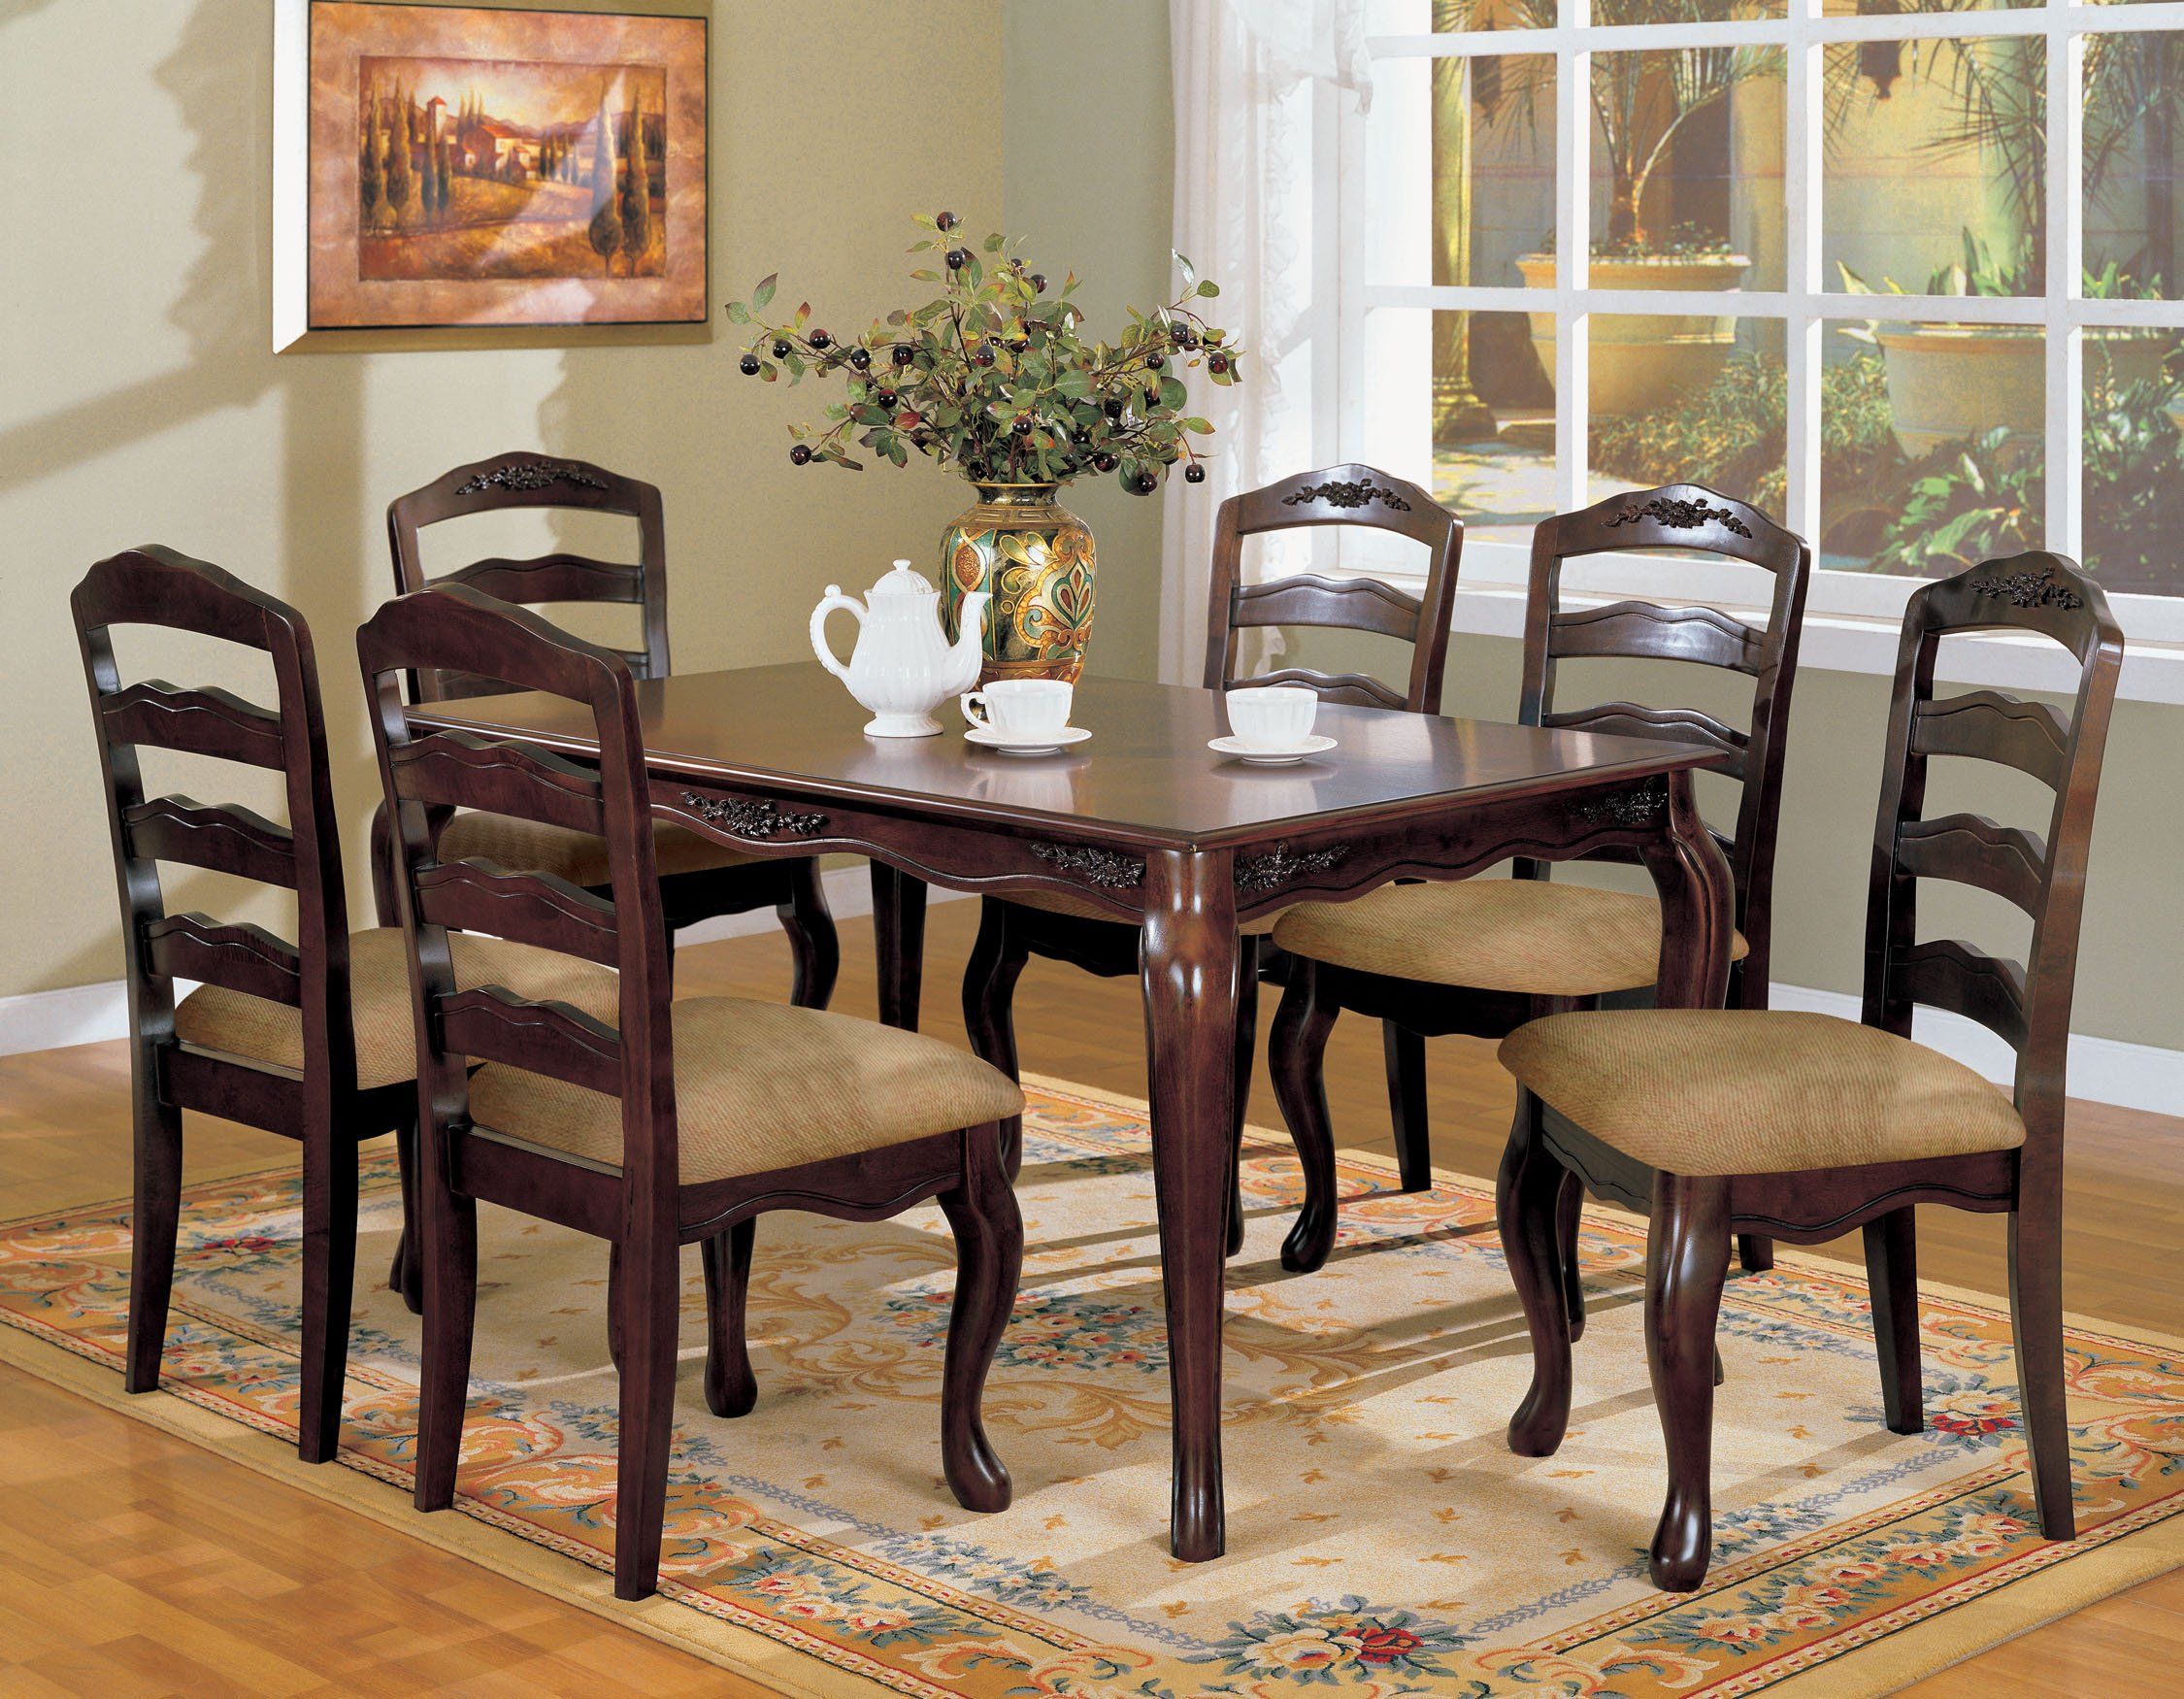 Furniture of America Kathryn Classic Style Dining Table, Dark Walnut Finish by Furniture of America